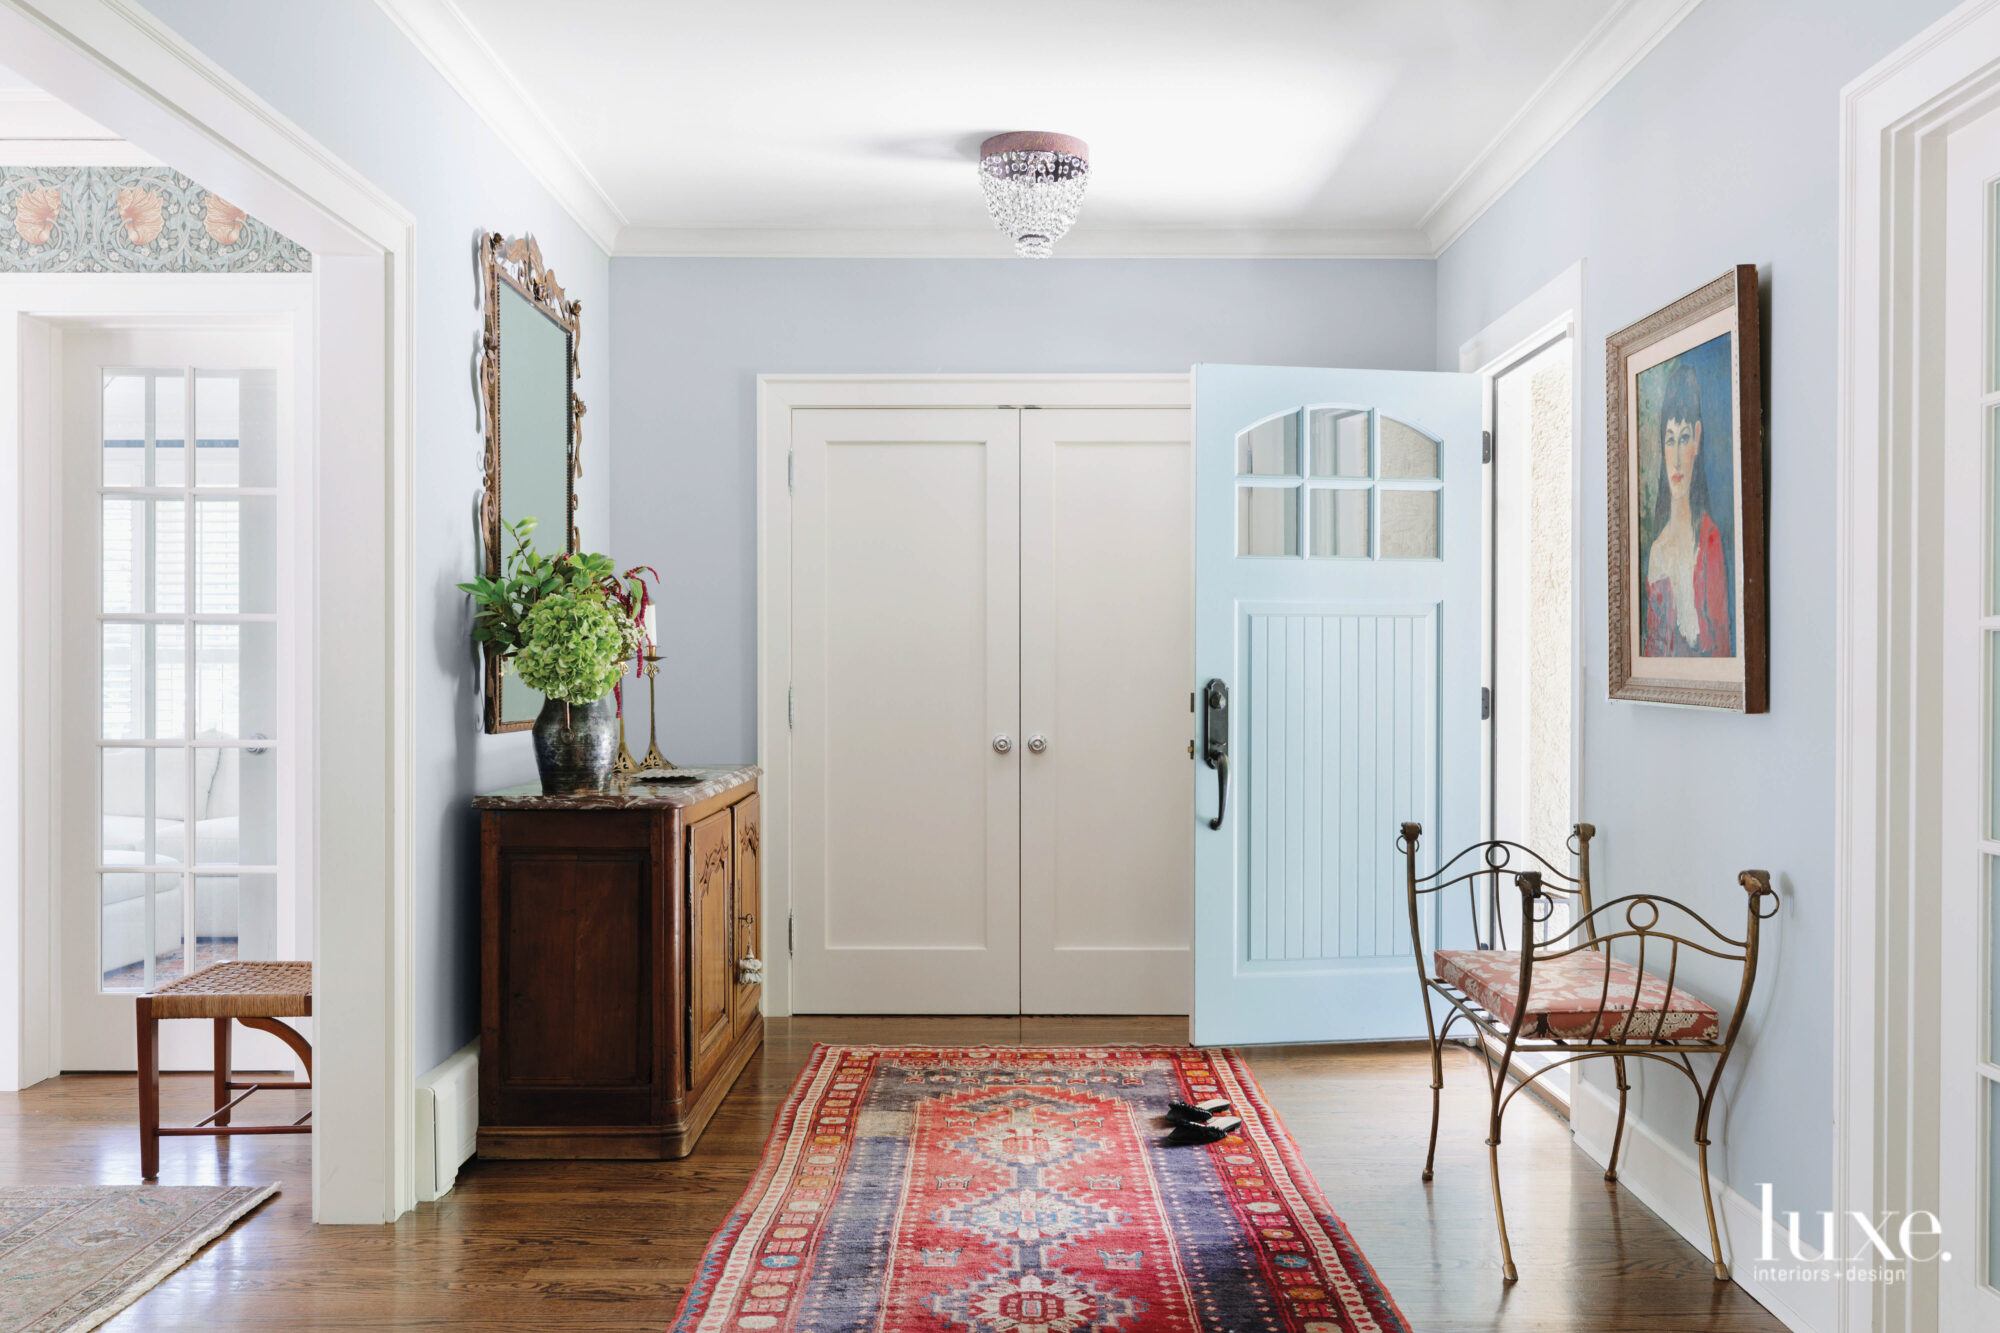 A colorful runner and a blue farmhouse door welcome visitors into the home's entryway